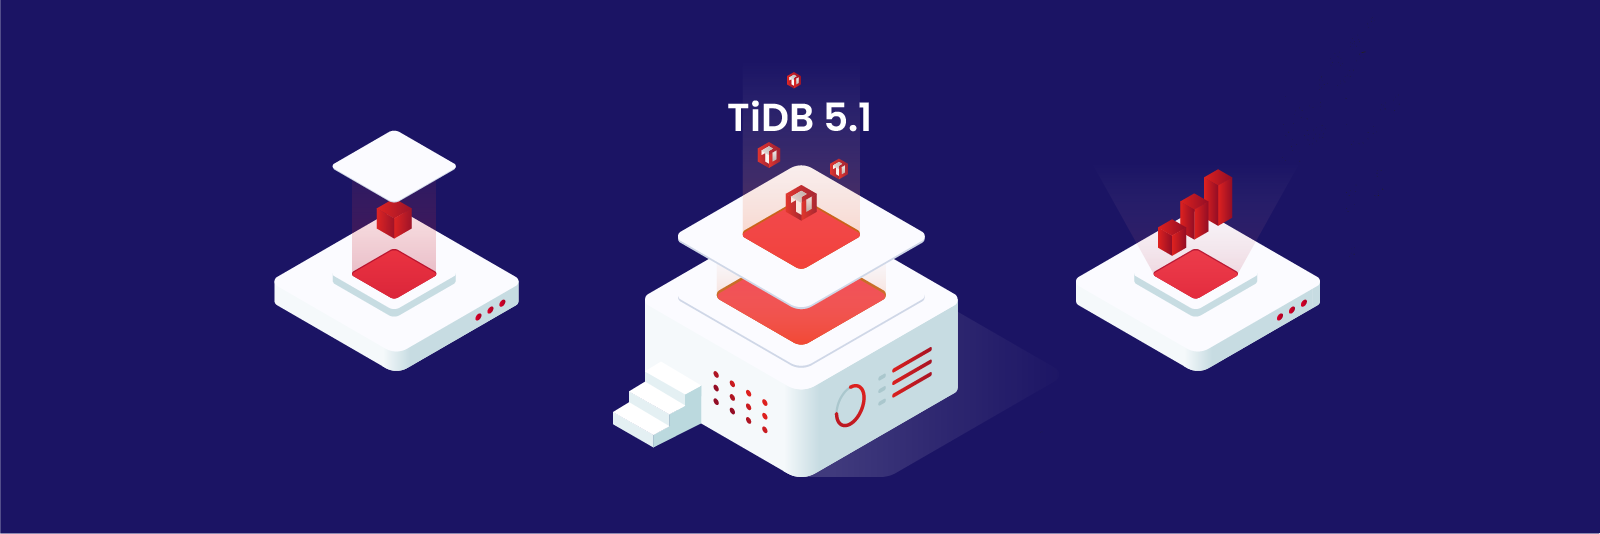 TiDB 5.1: Easily Build Your Mission-Critical Applications at Any Scale